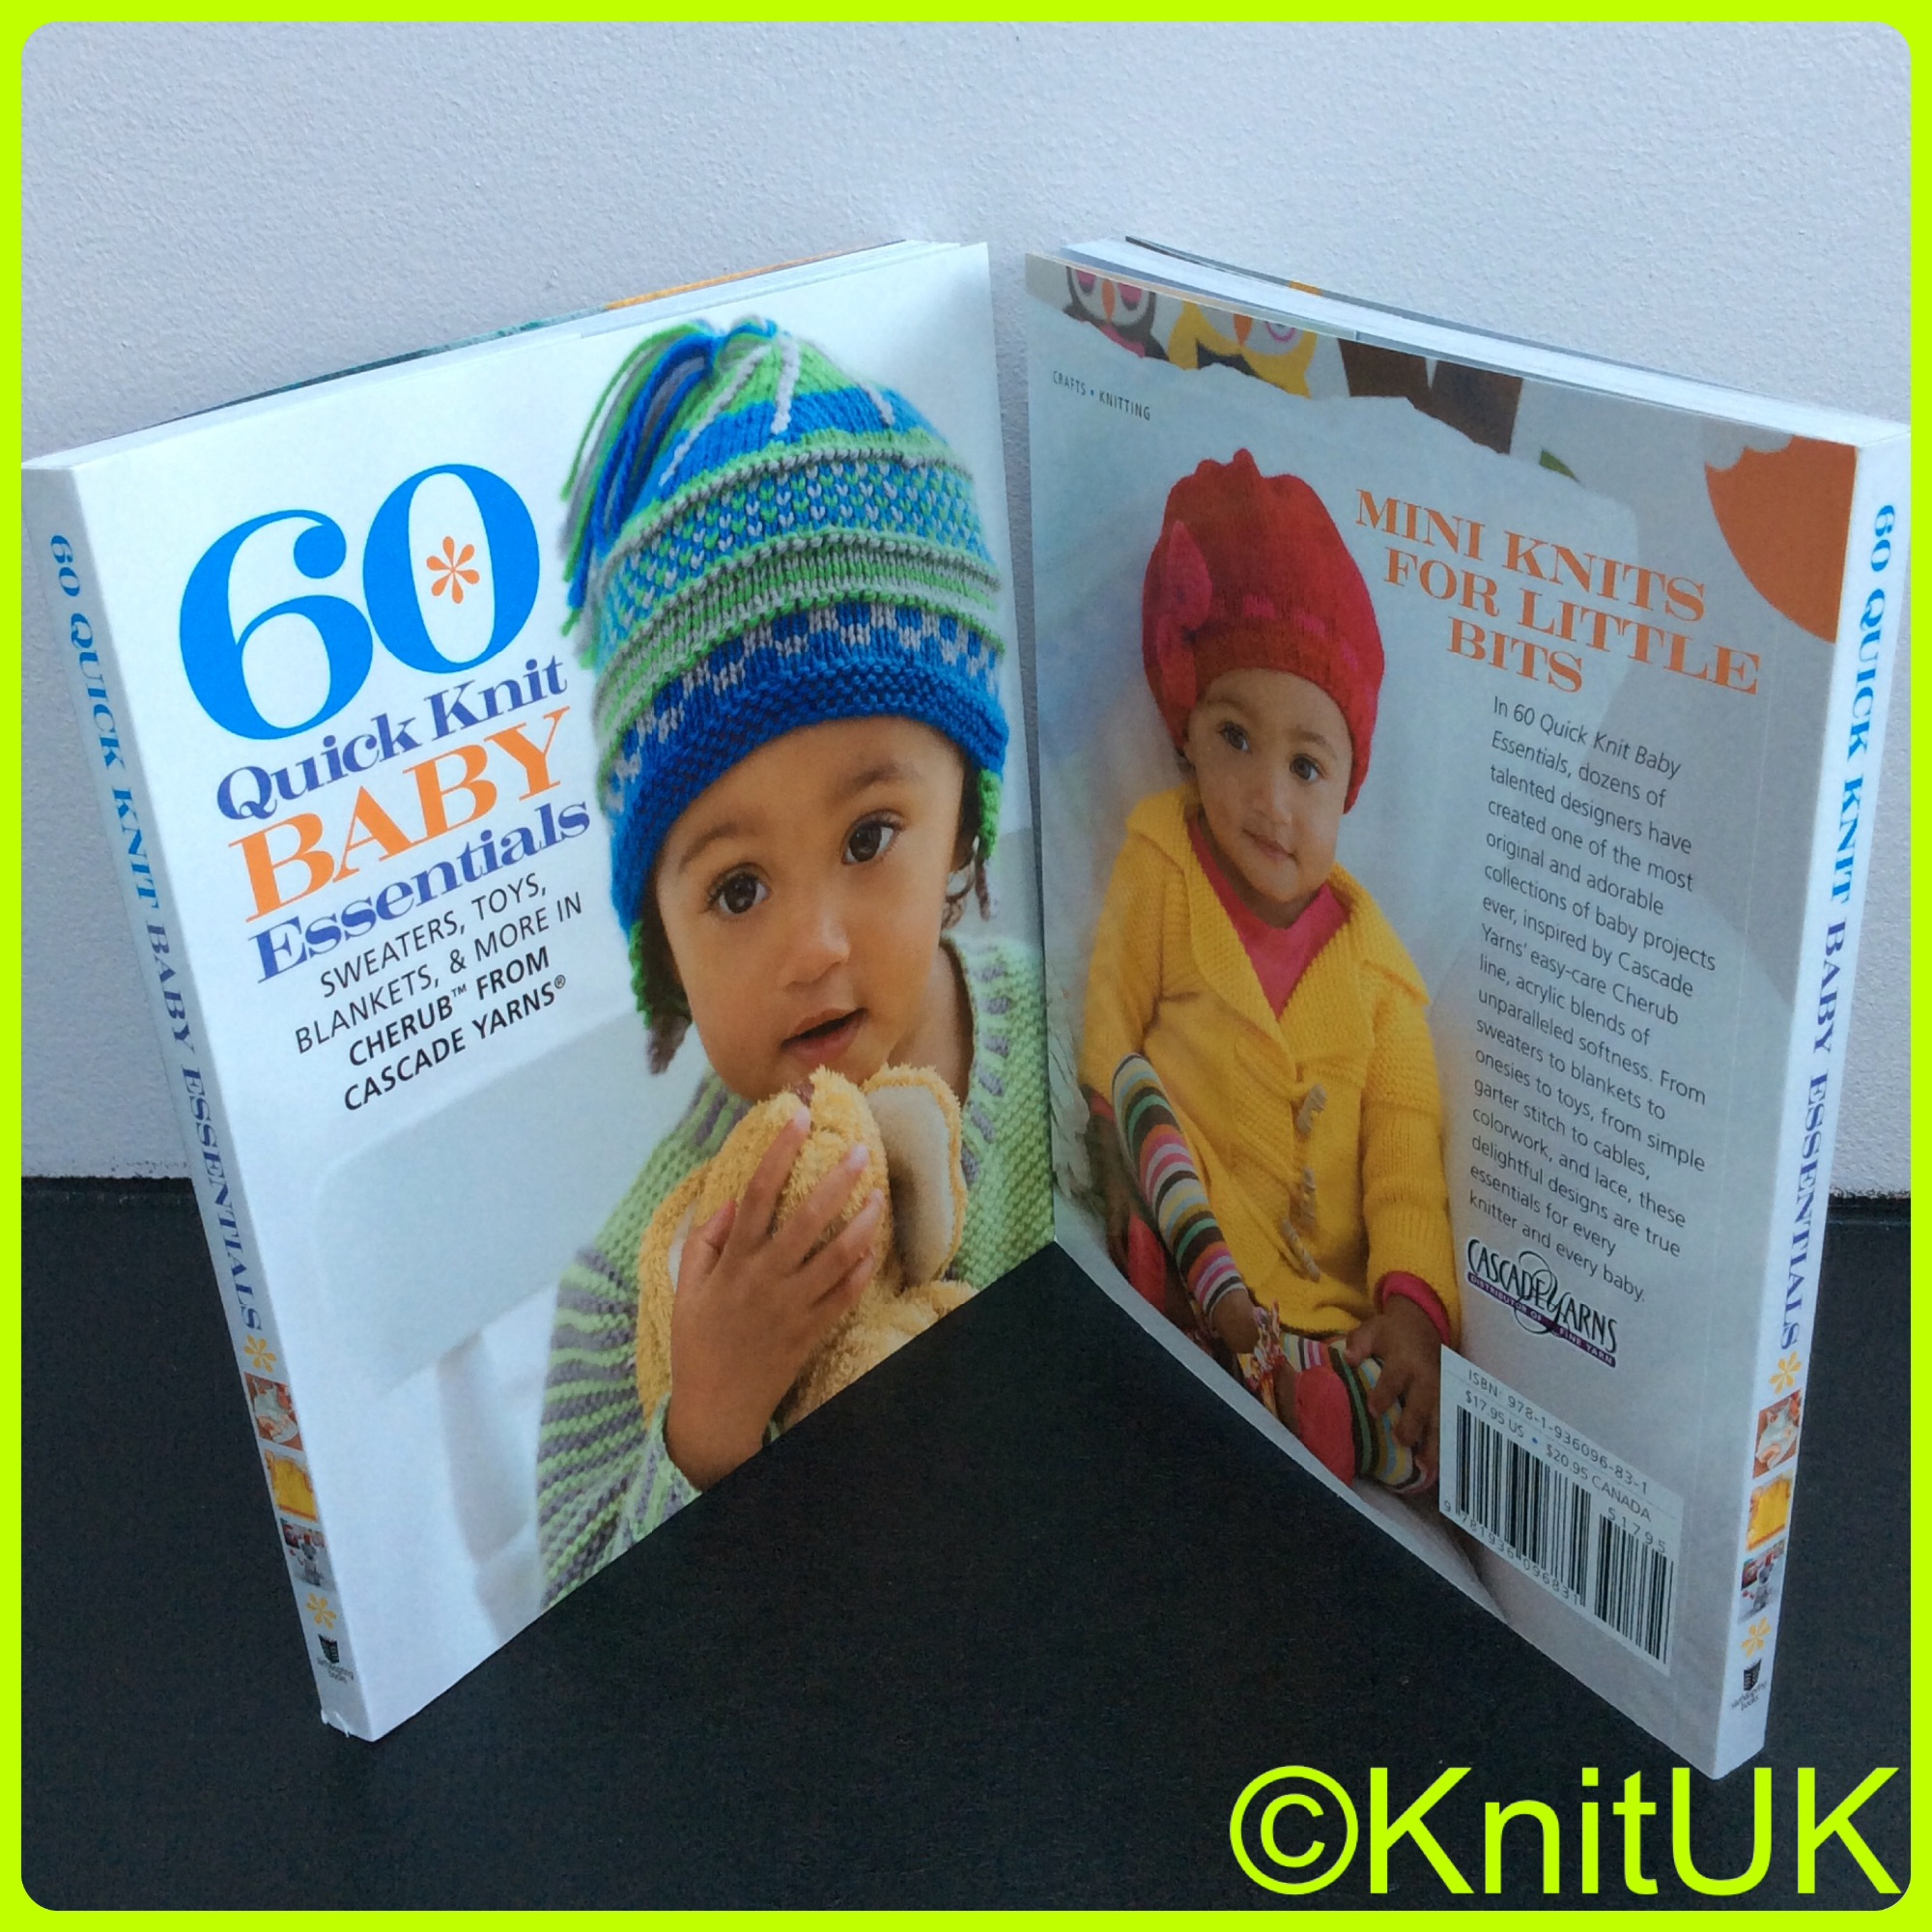 60 quick knit baby essentials book sixth & spring cascade yarns